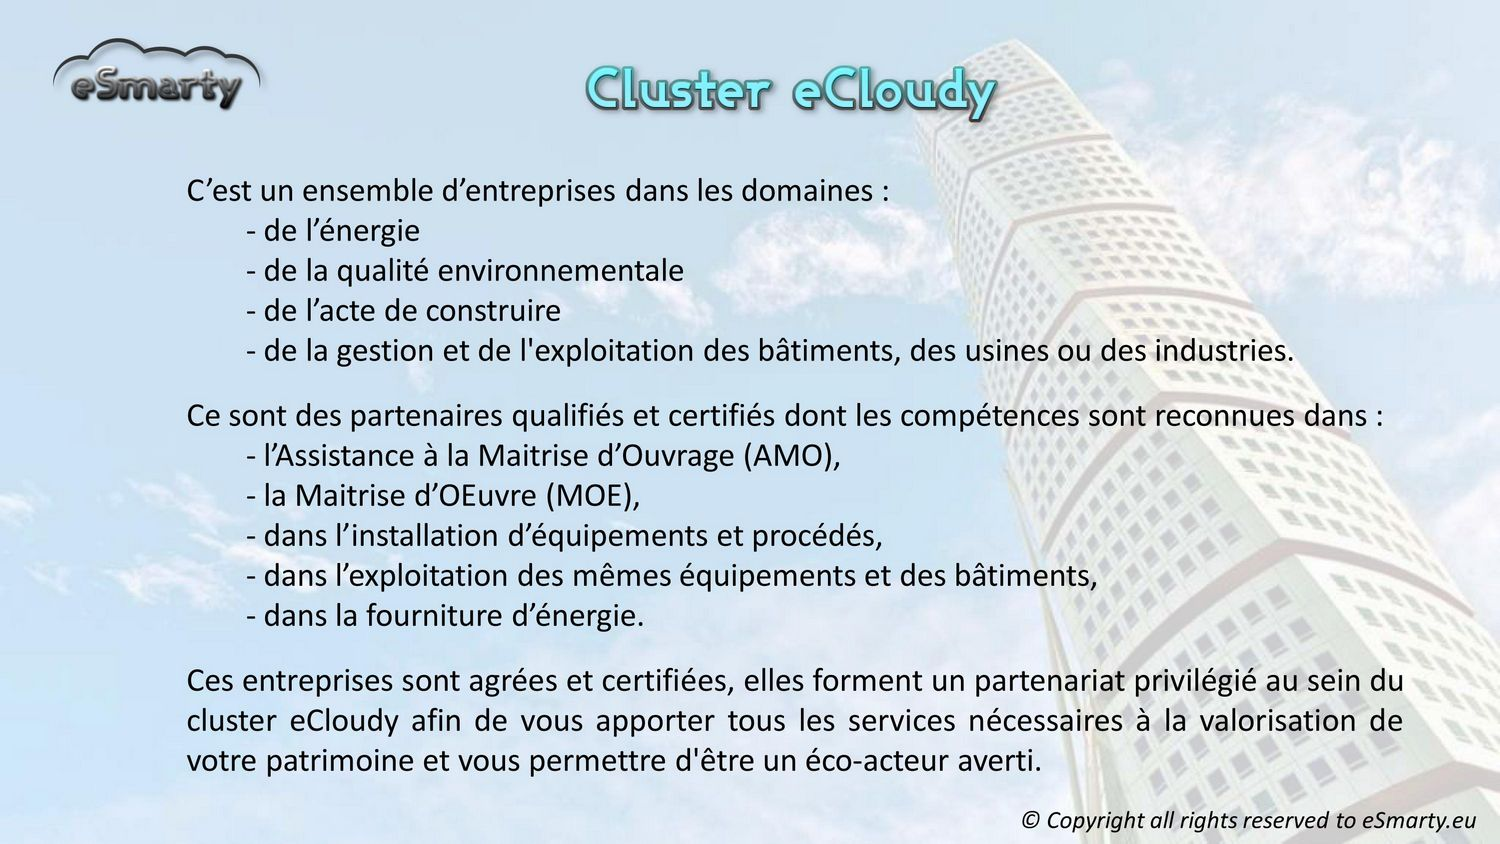 Le Cluster eCloudy